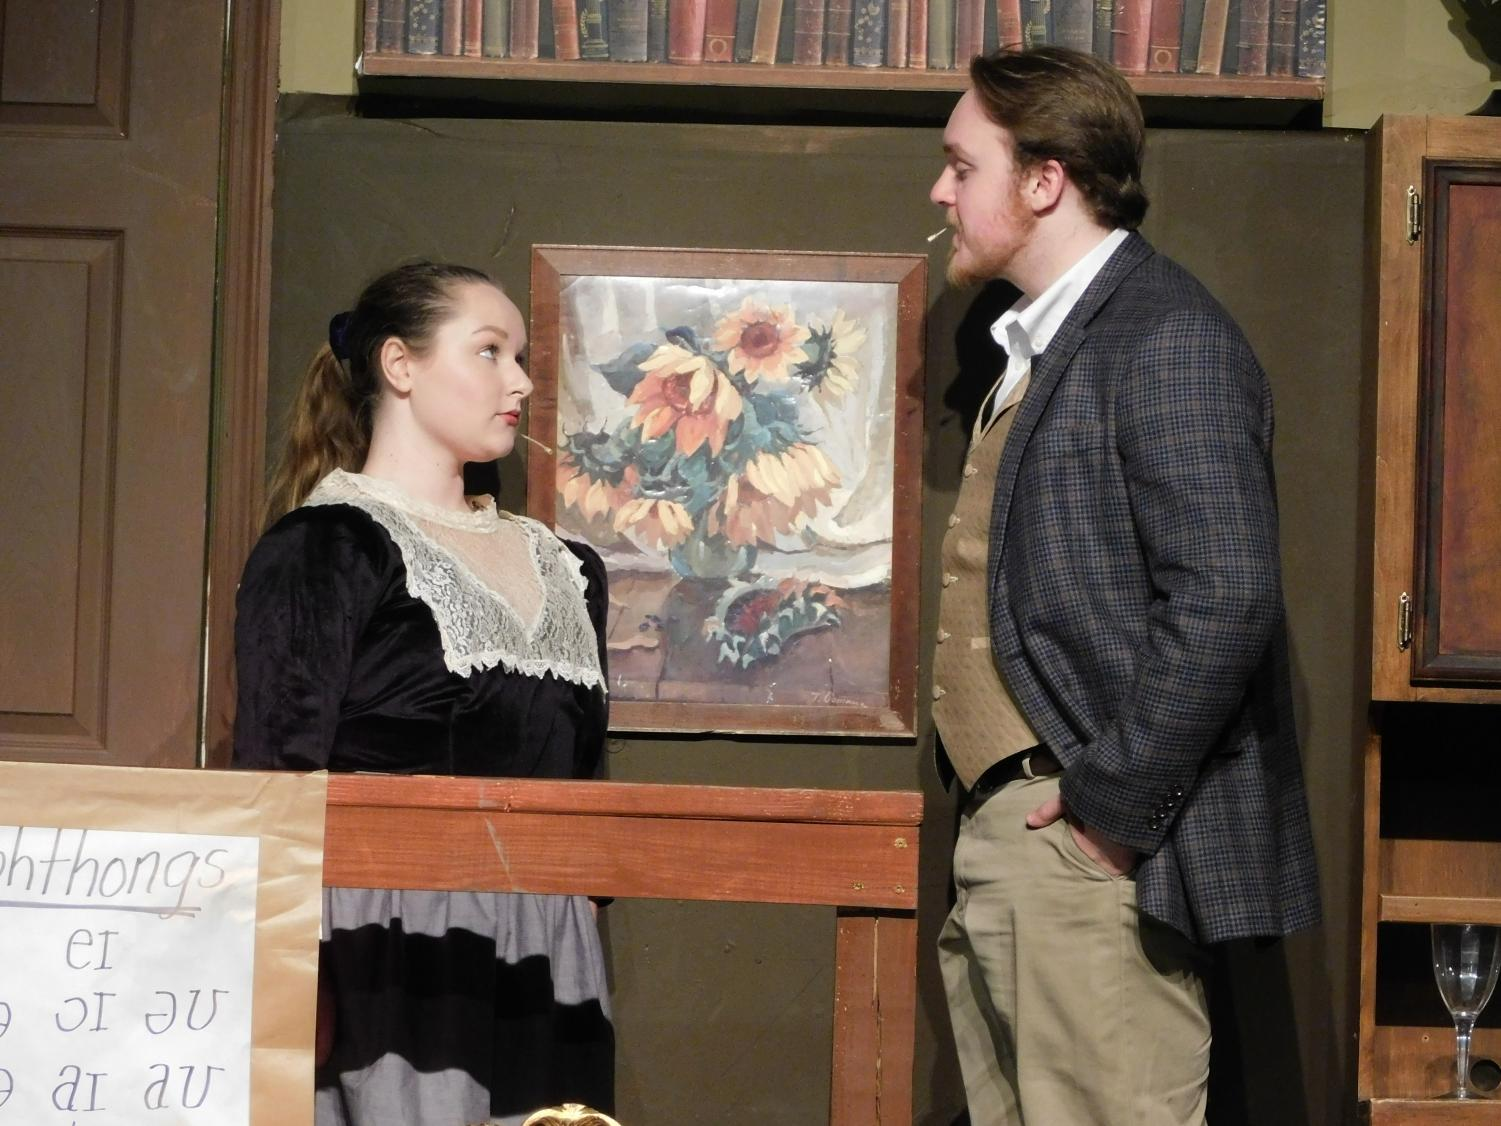 Shiloh St. Clair, junior writes, does drama, piano, and vocal lessons as hobbies. She was recently in a play called My Fair Lady. In this picture, she is acting out one of the scenes with a fellow actor.